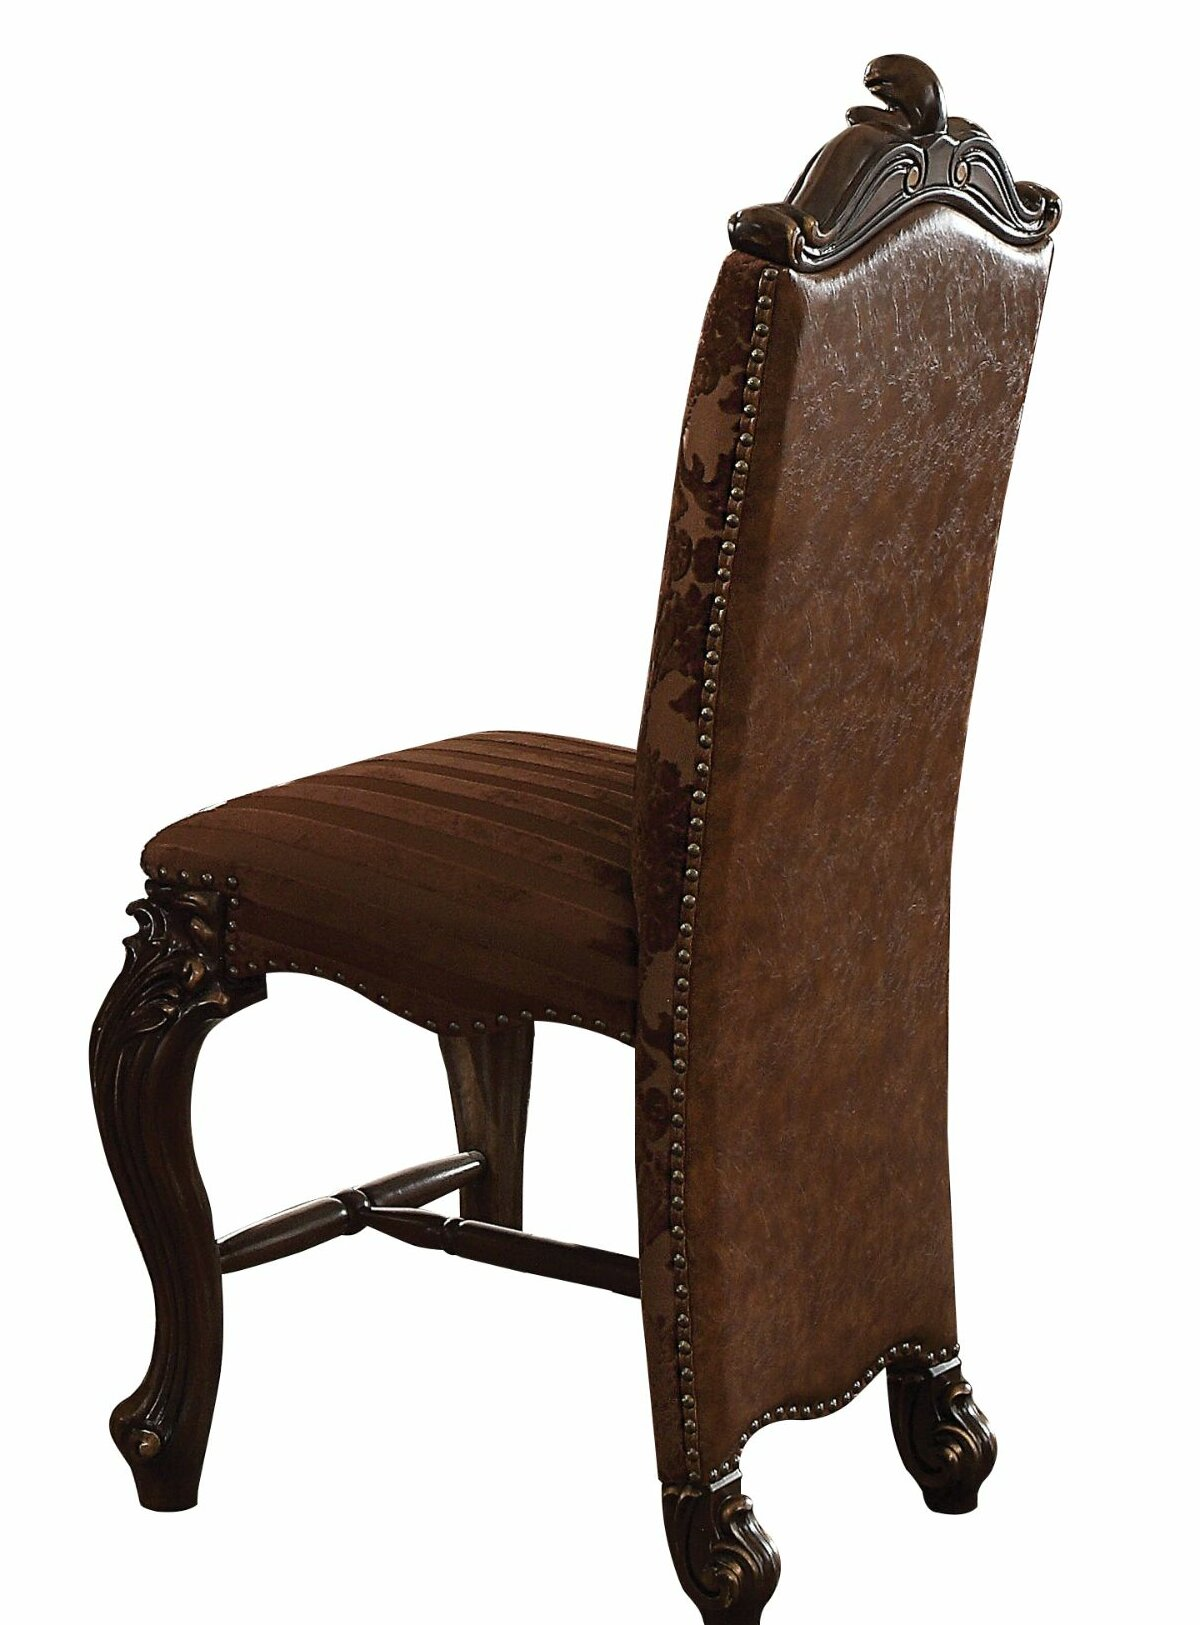 Sensational Way Wick Faux Leather Upholstered Wooden 24 Bar Stool Ibusinesslaw Wood Chair Design Ideas Ibusinesslaworg